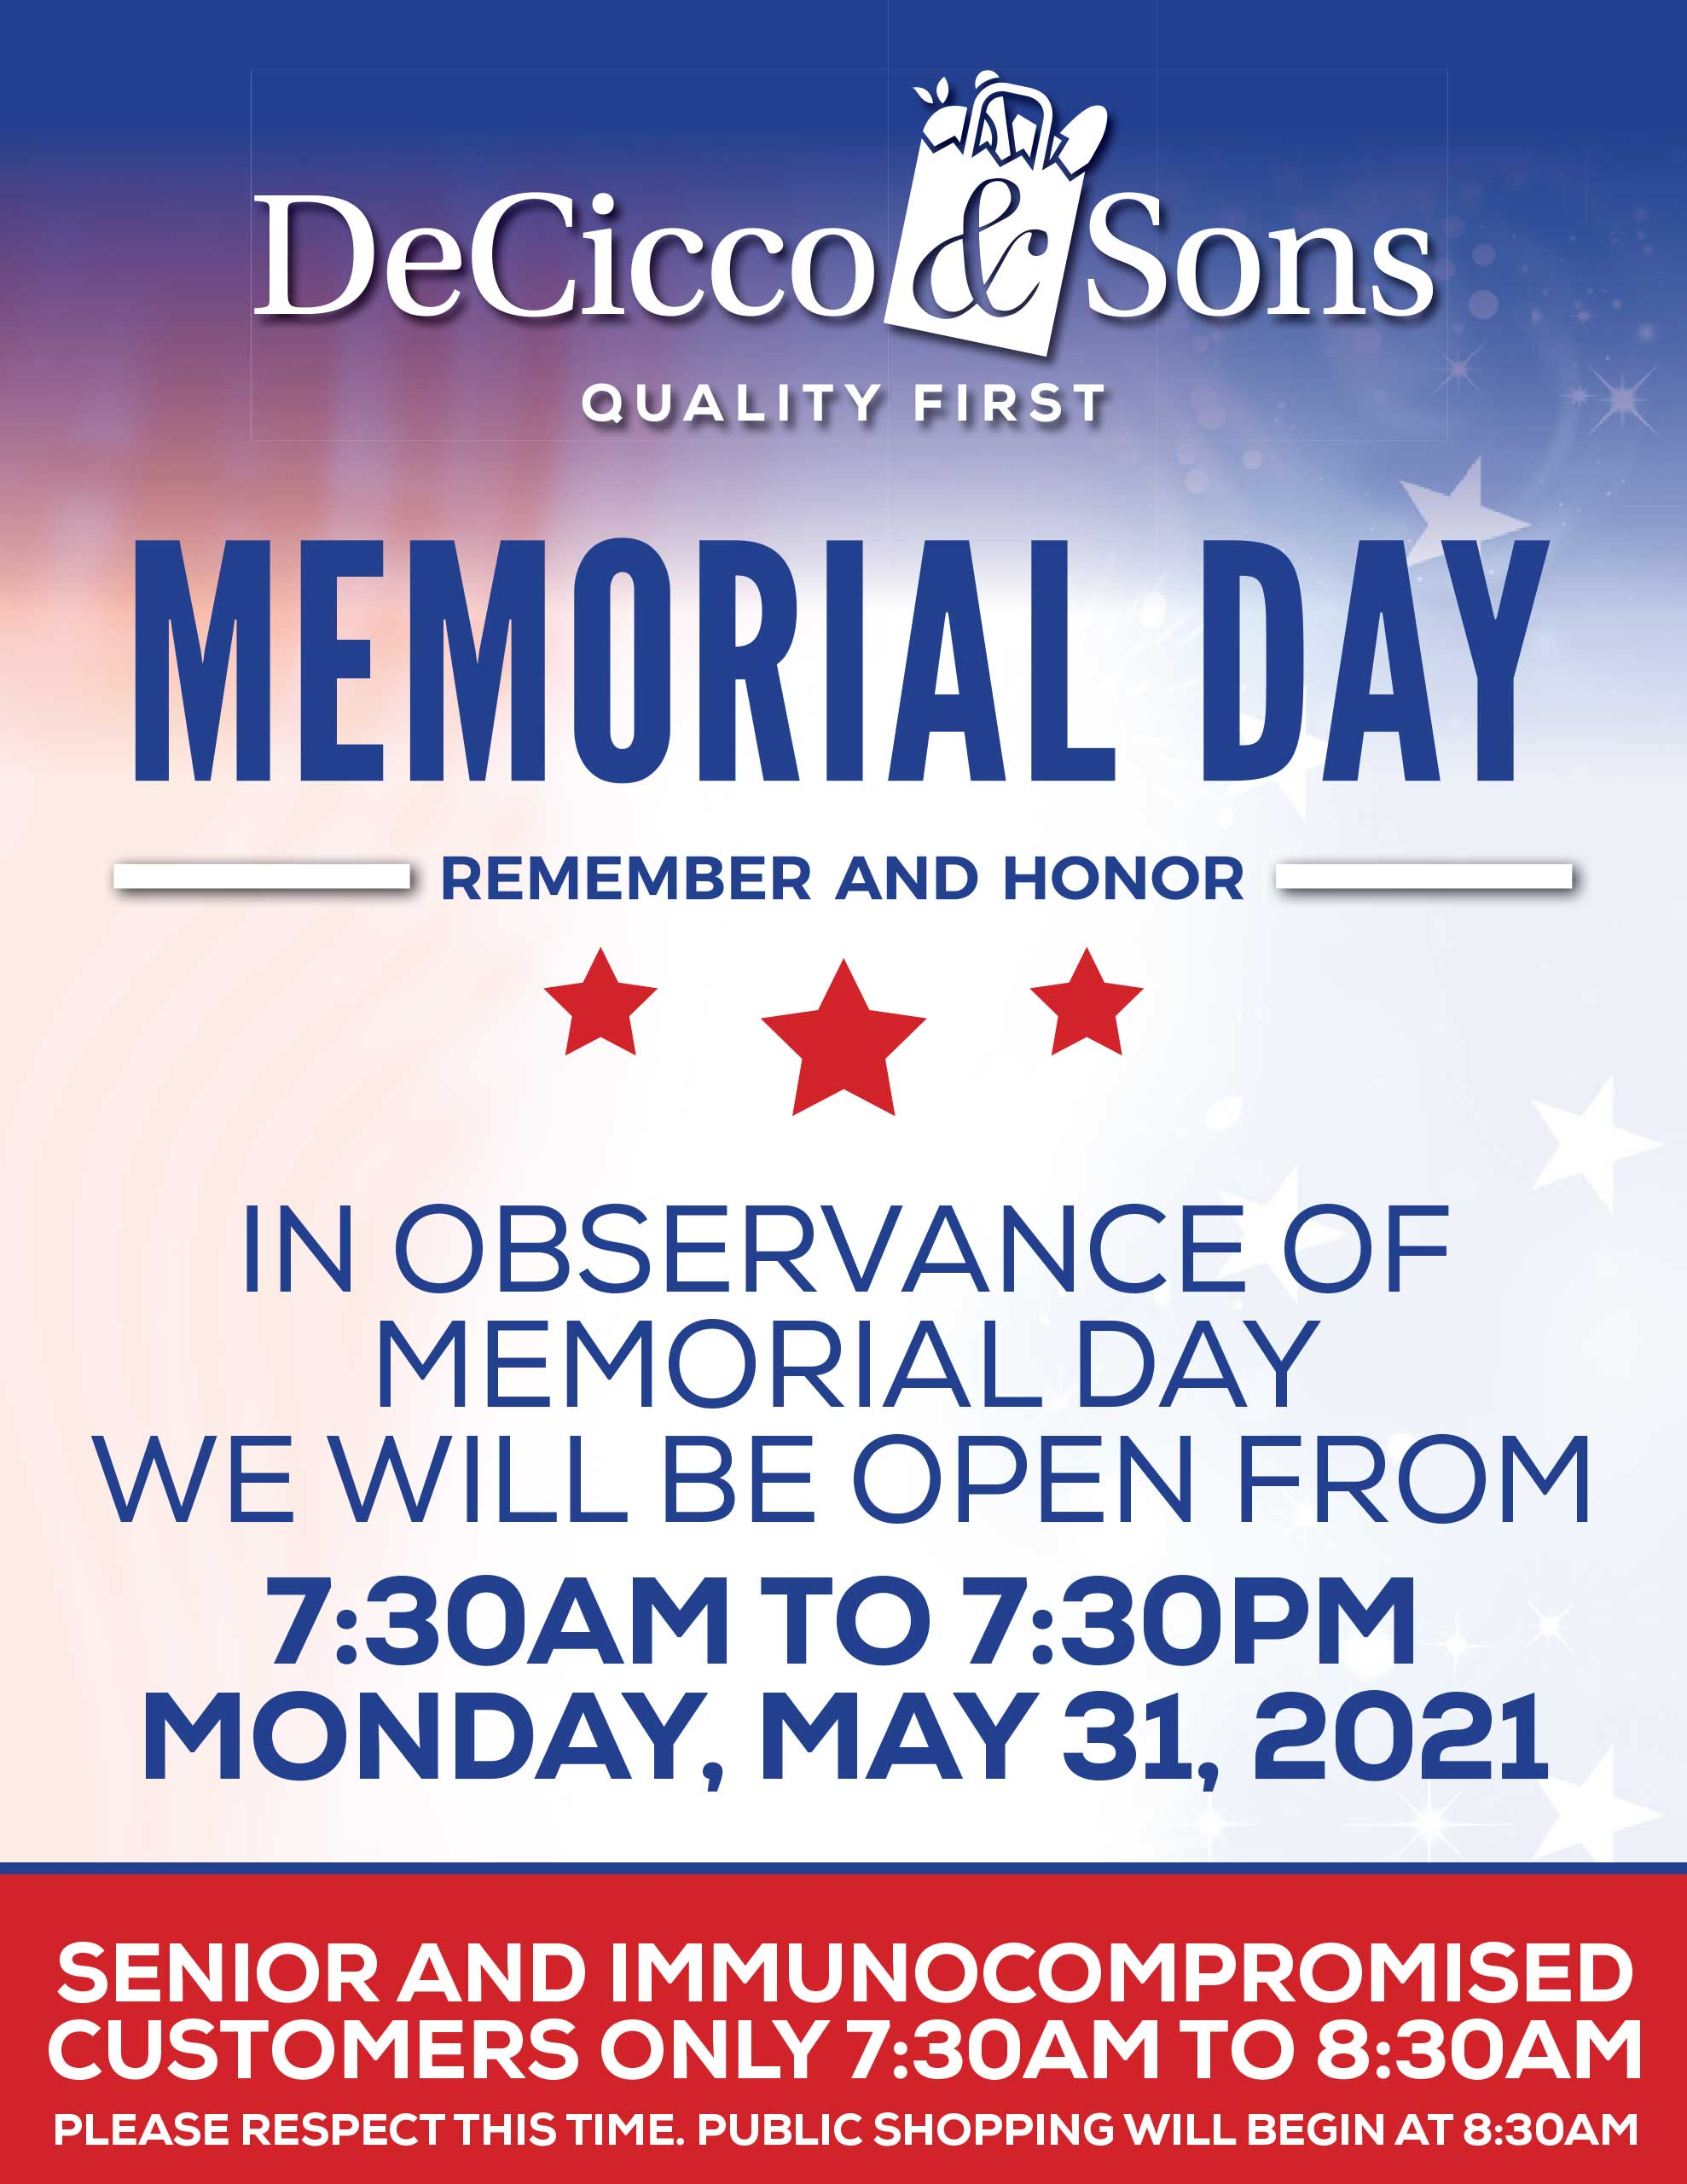 Memorial Day Westchester Hours - open from 7:30am to 7:30pm